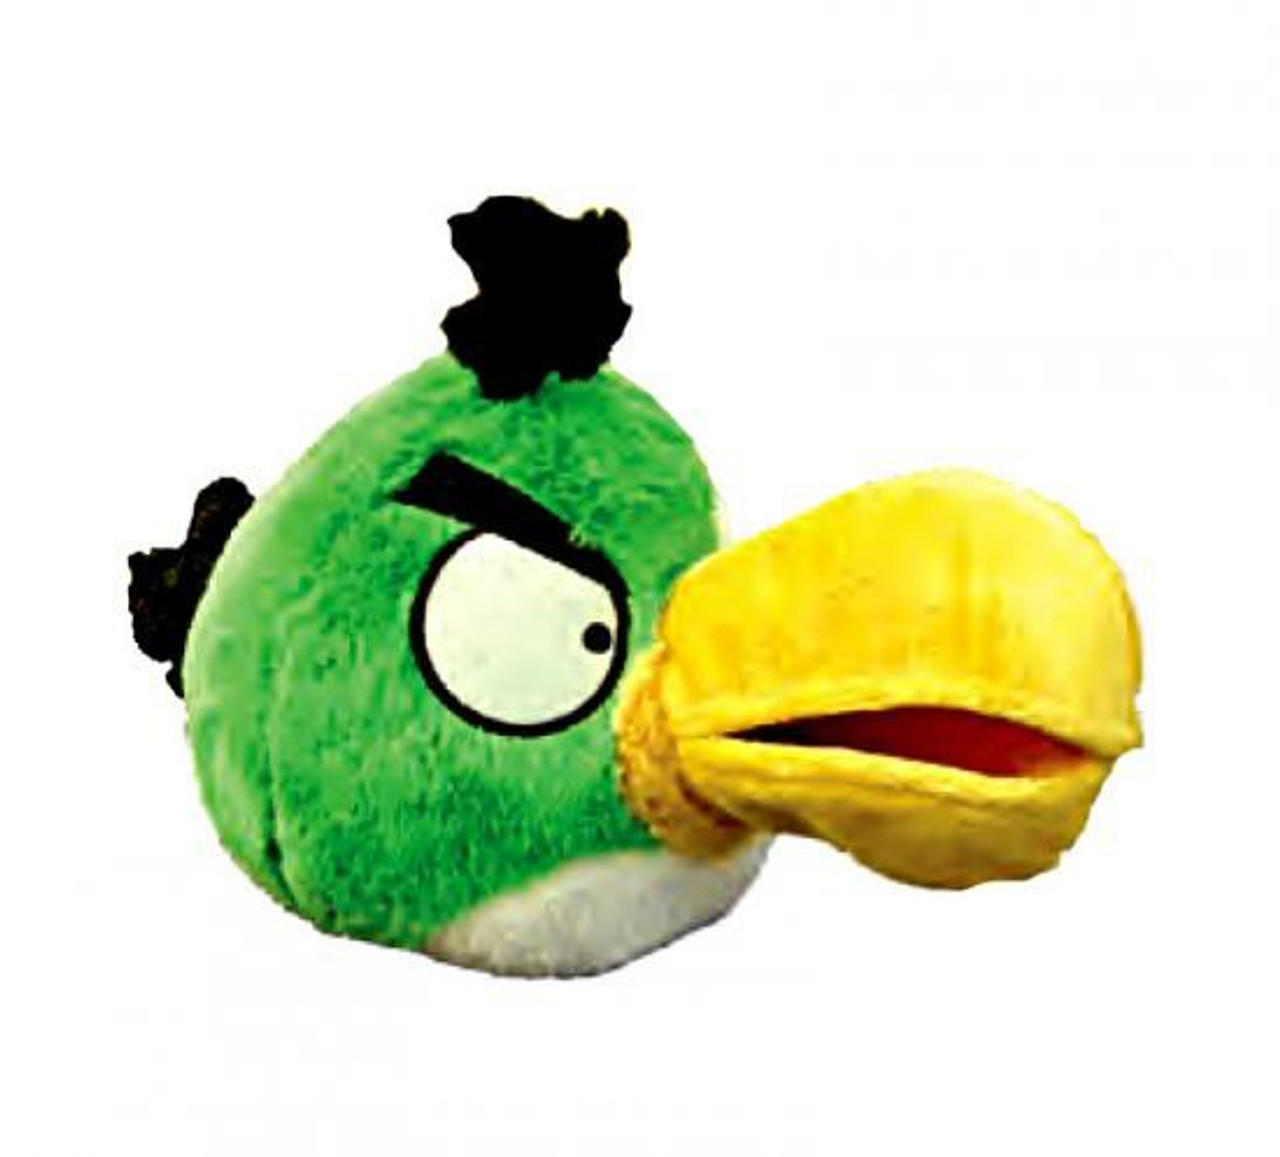 Angry Birds Toucan 5 Plush Green Bird With Sound Commonwealth Toys